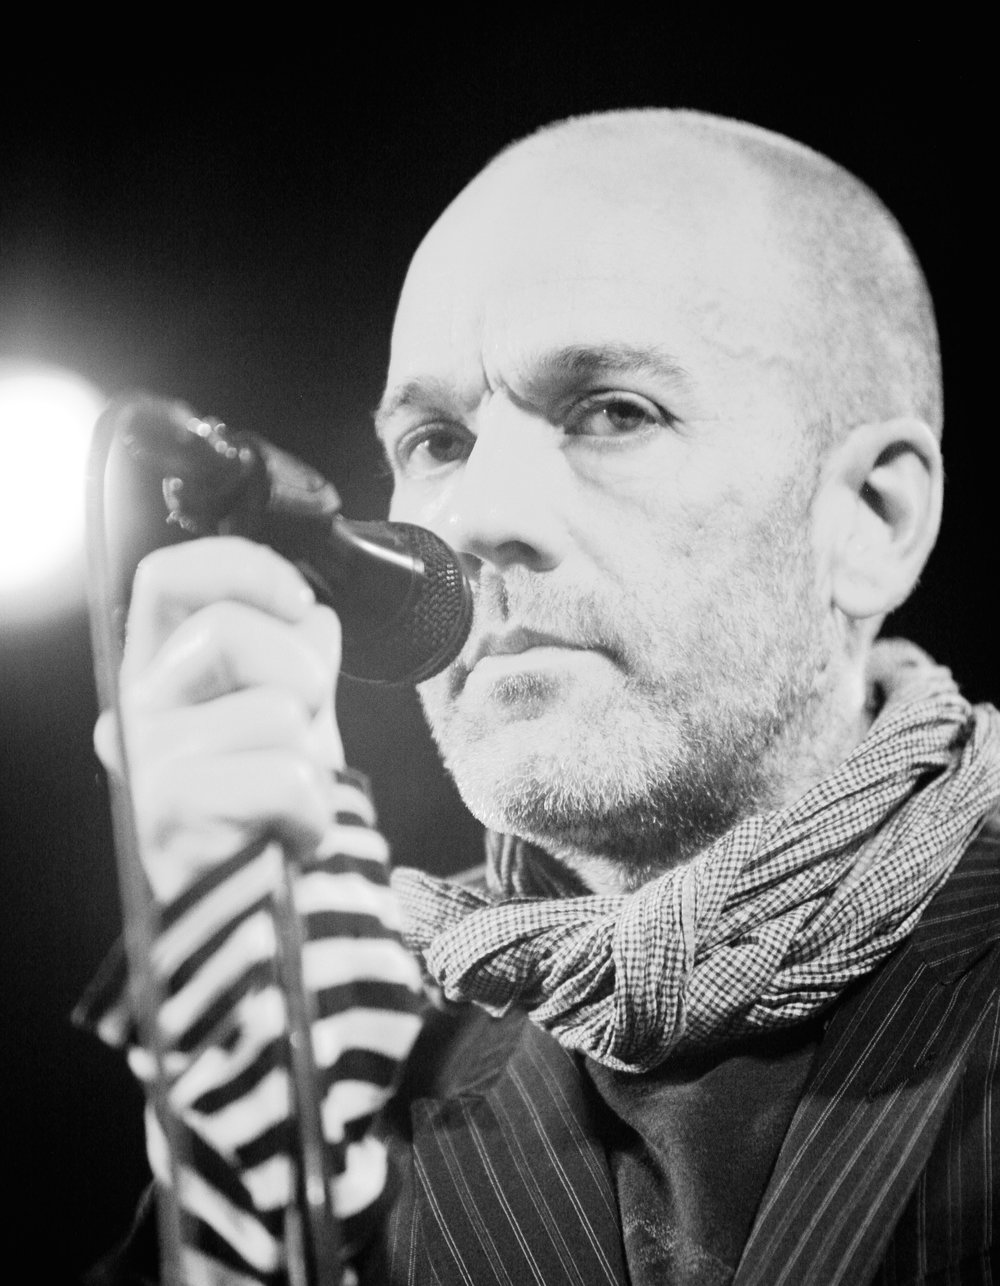 R.E.M. frontman Michael Stipe. Credit: Kris Krug via Wikimedia Commons.